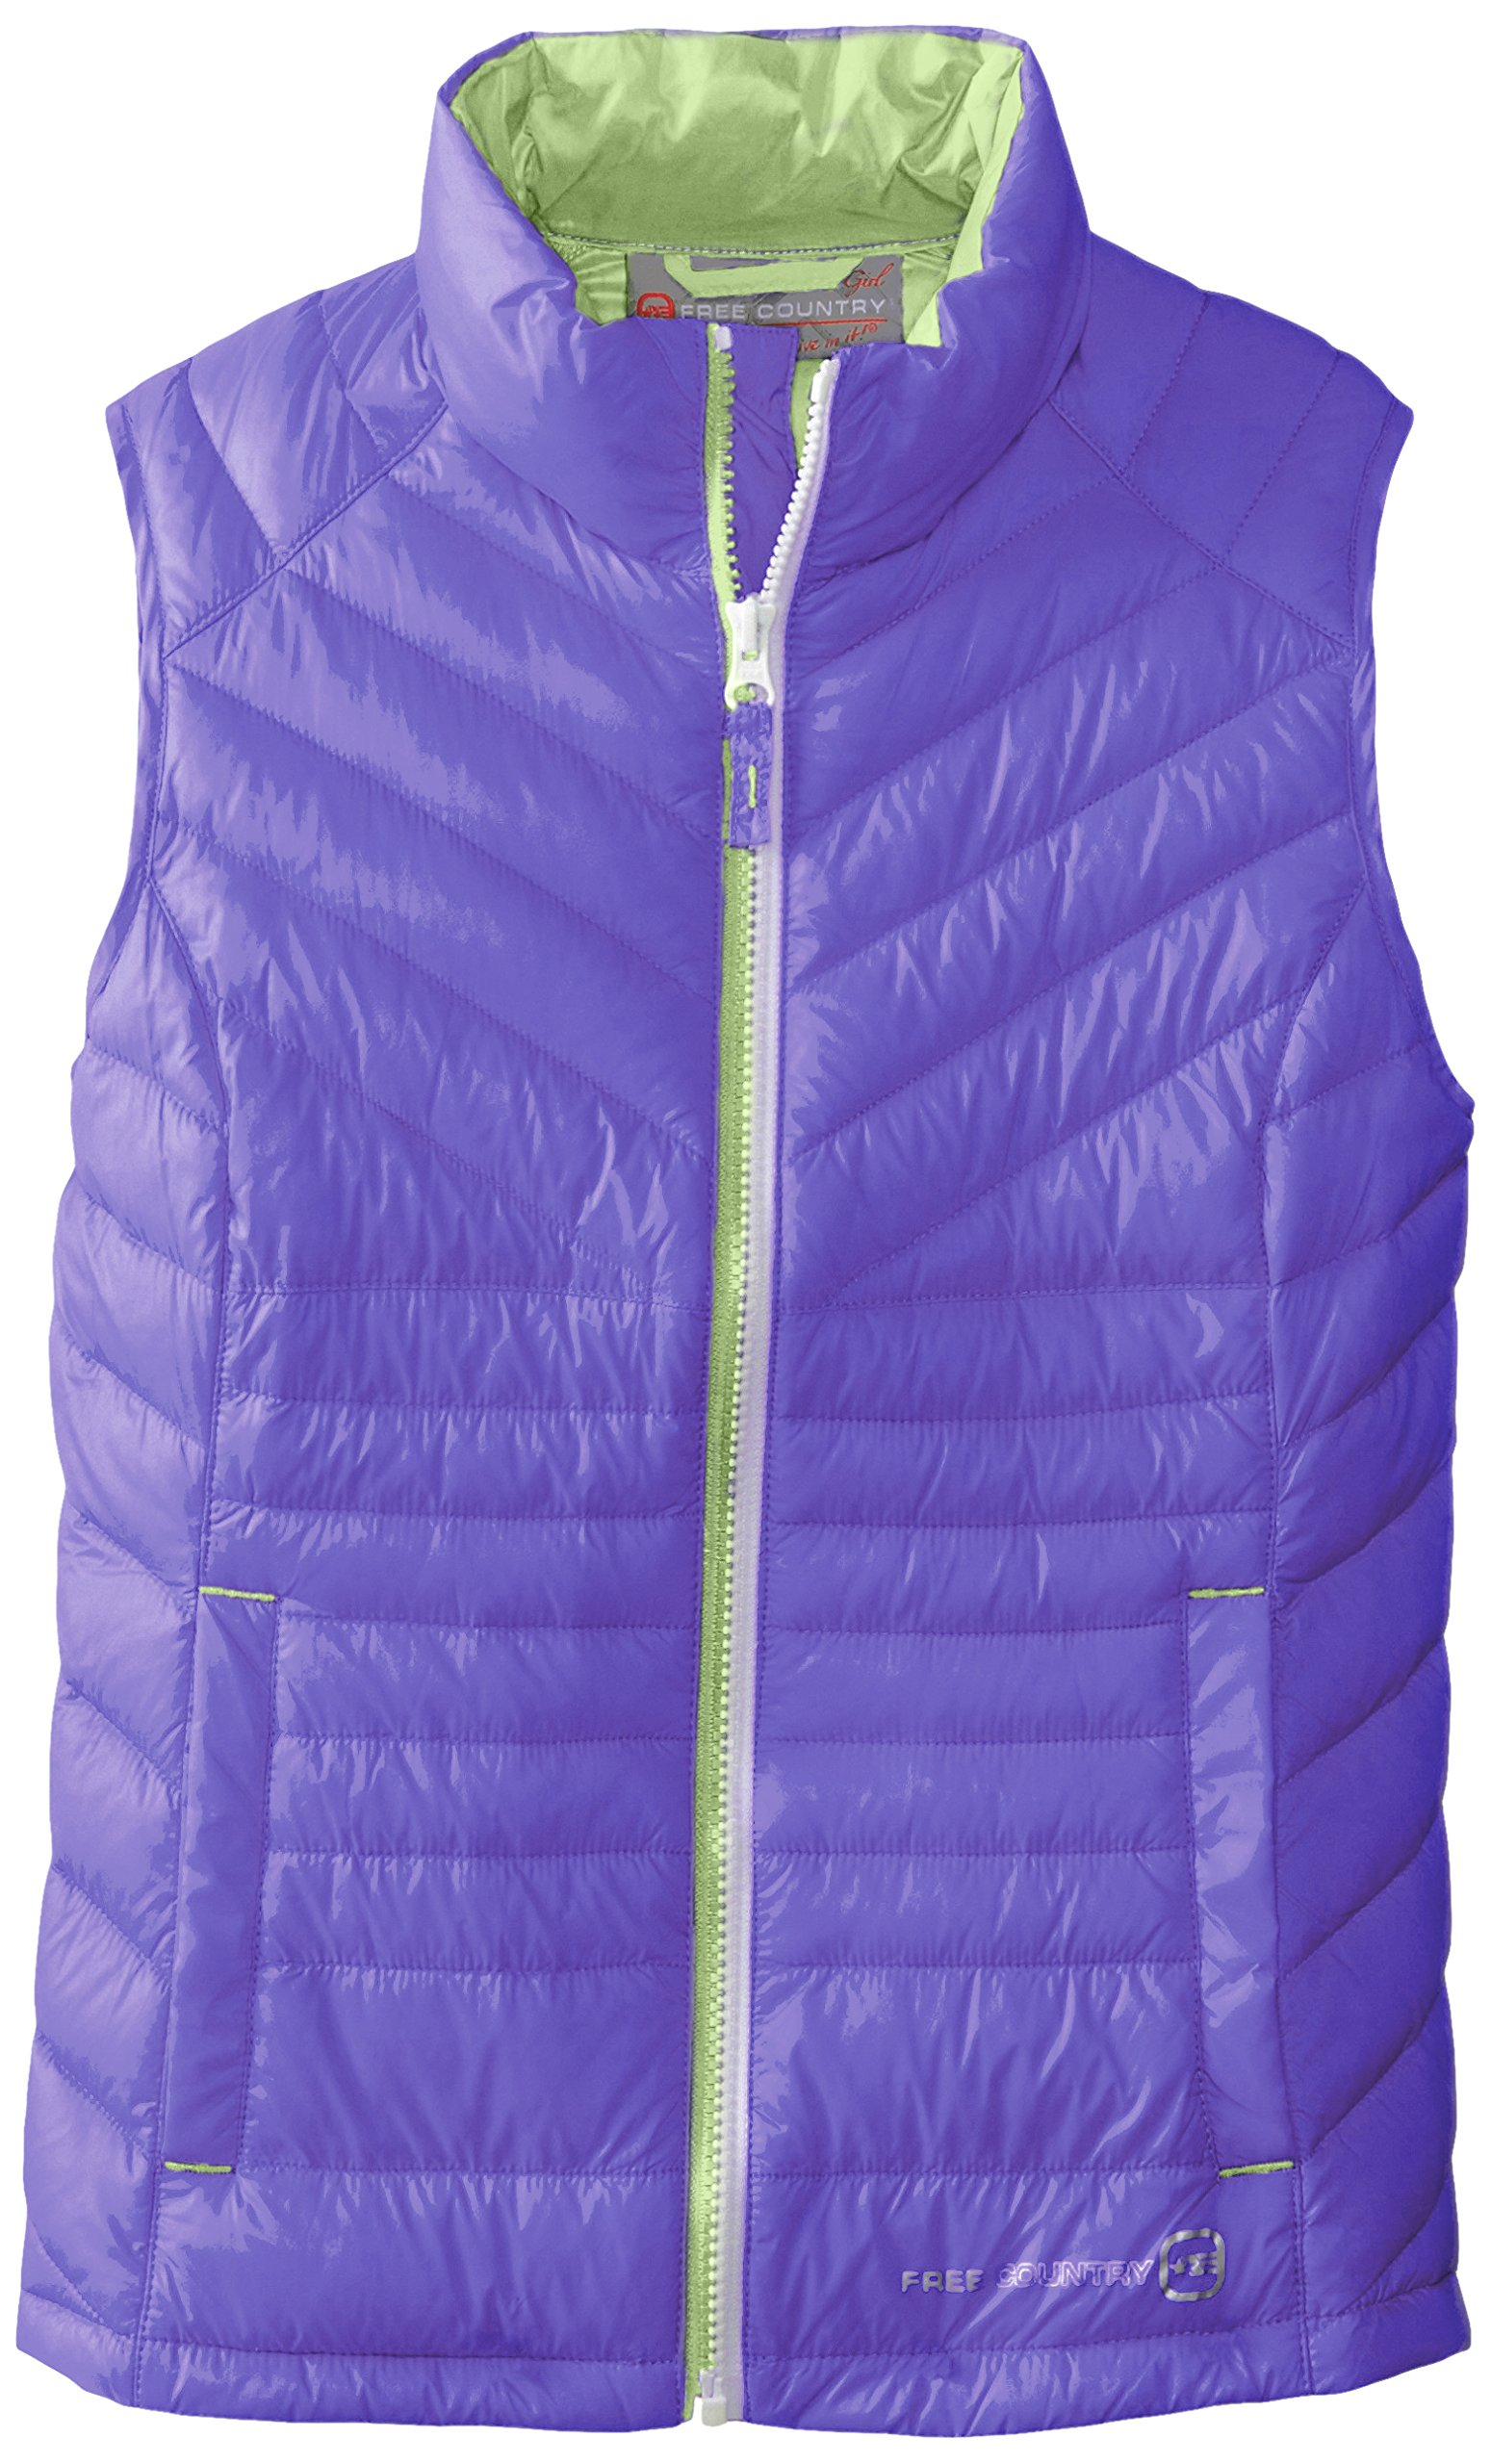 Free Country Big Girls'  Down Vest, Violet/Bluish, Medium by Free Country